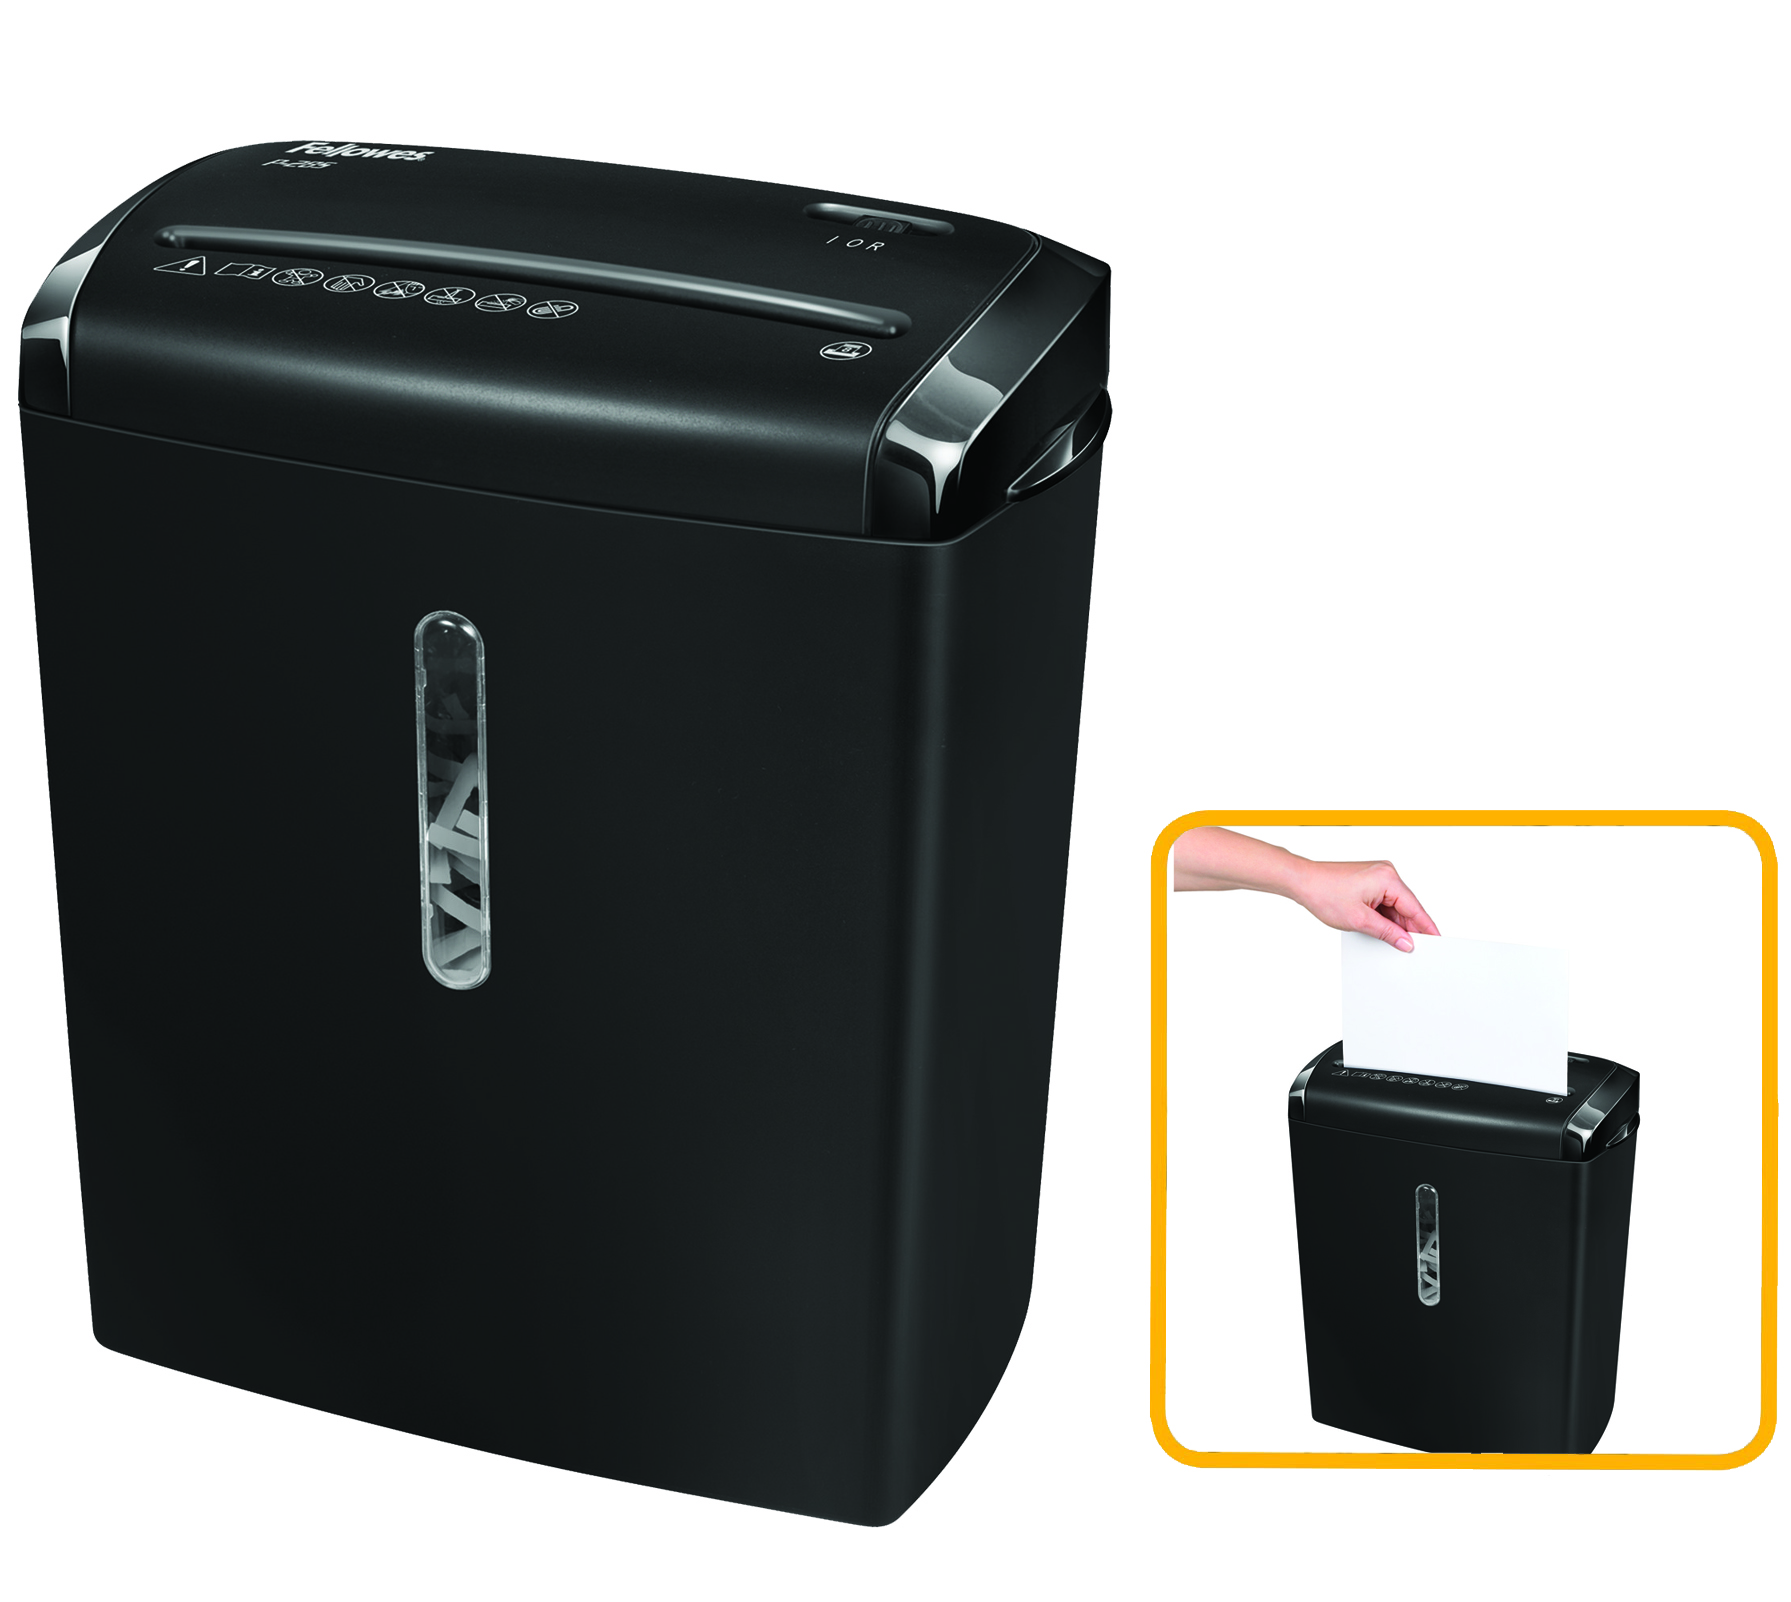 Destruidora de Papel Fellowes P-28S, 8fls, 15L